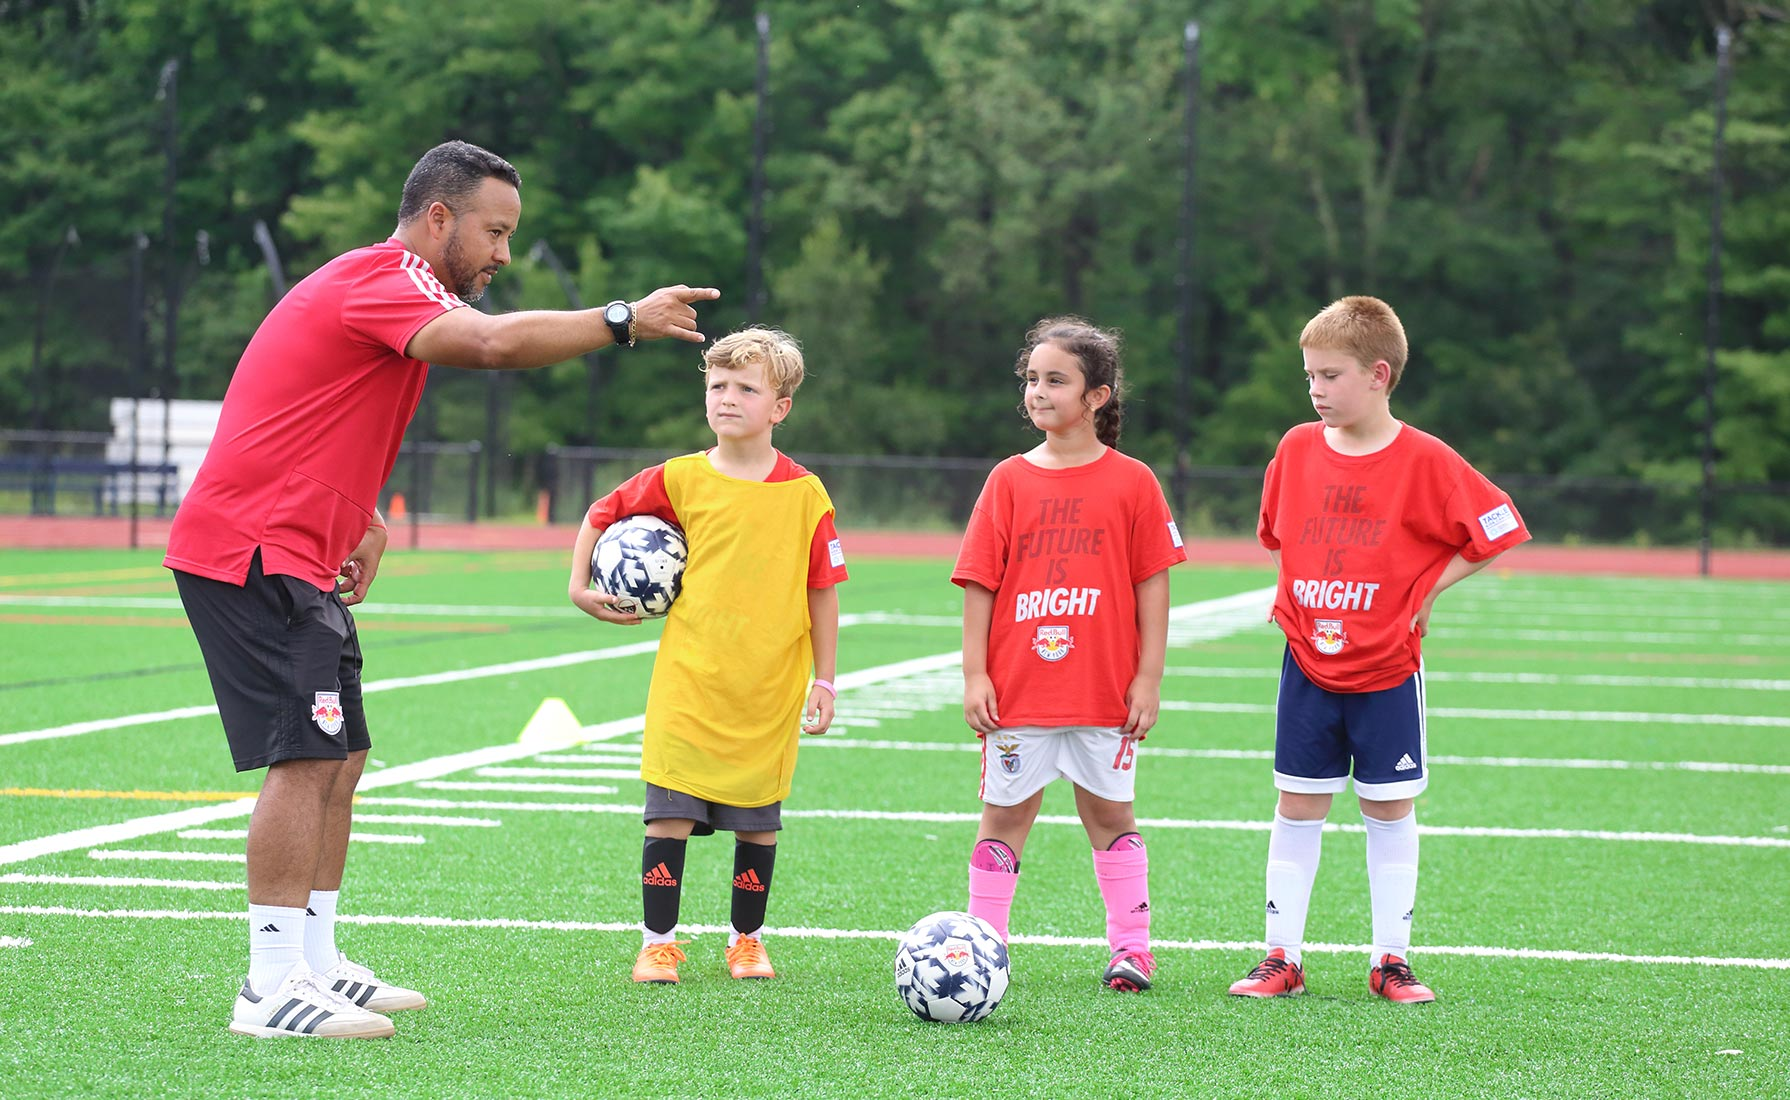 Red Bull Soccer Camp instruction at Pingry Big Blue Summer